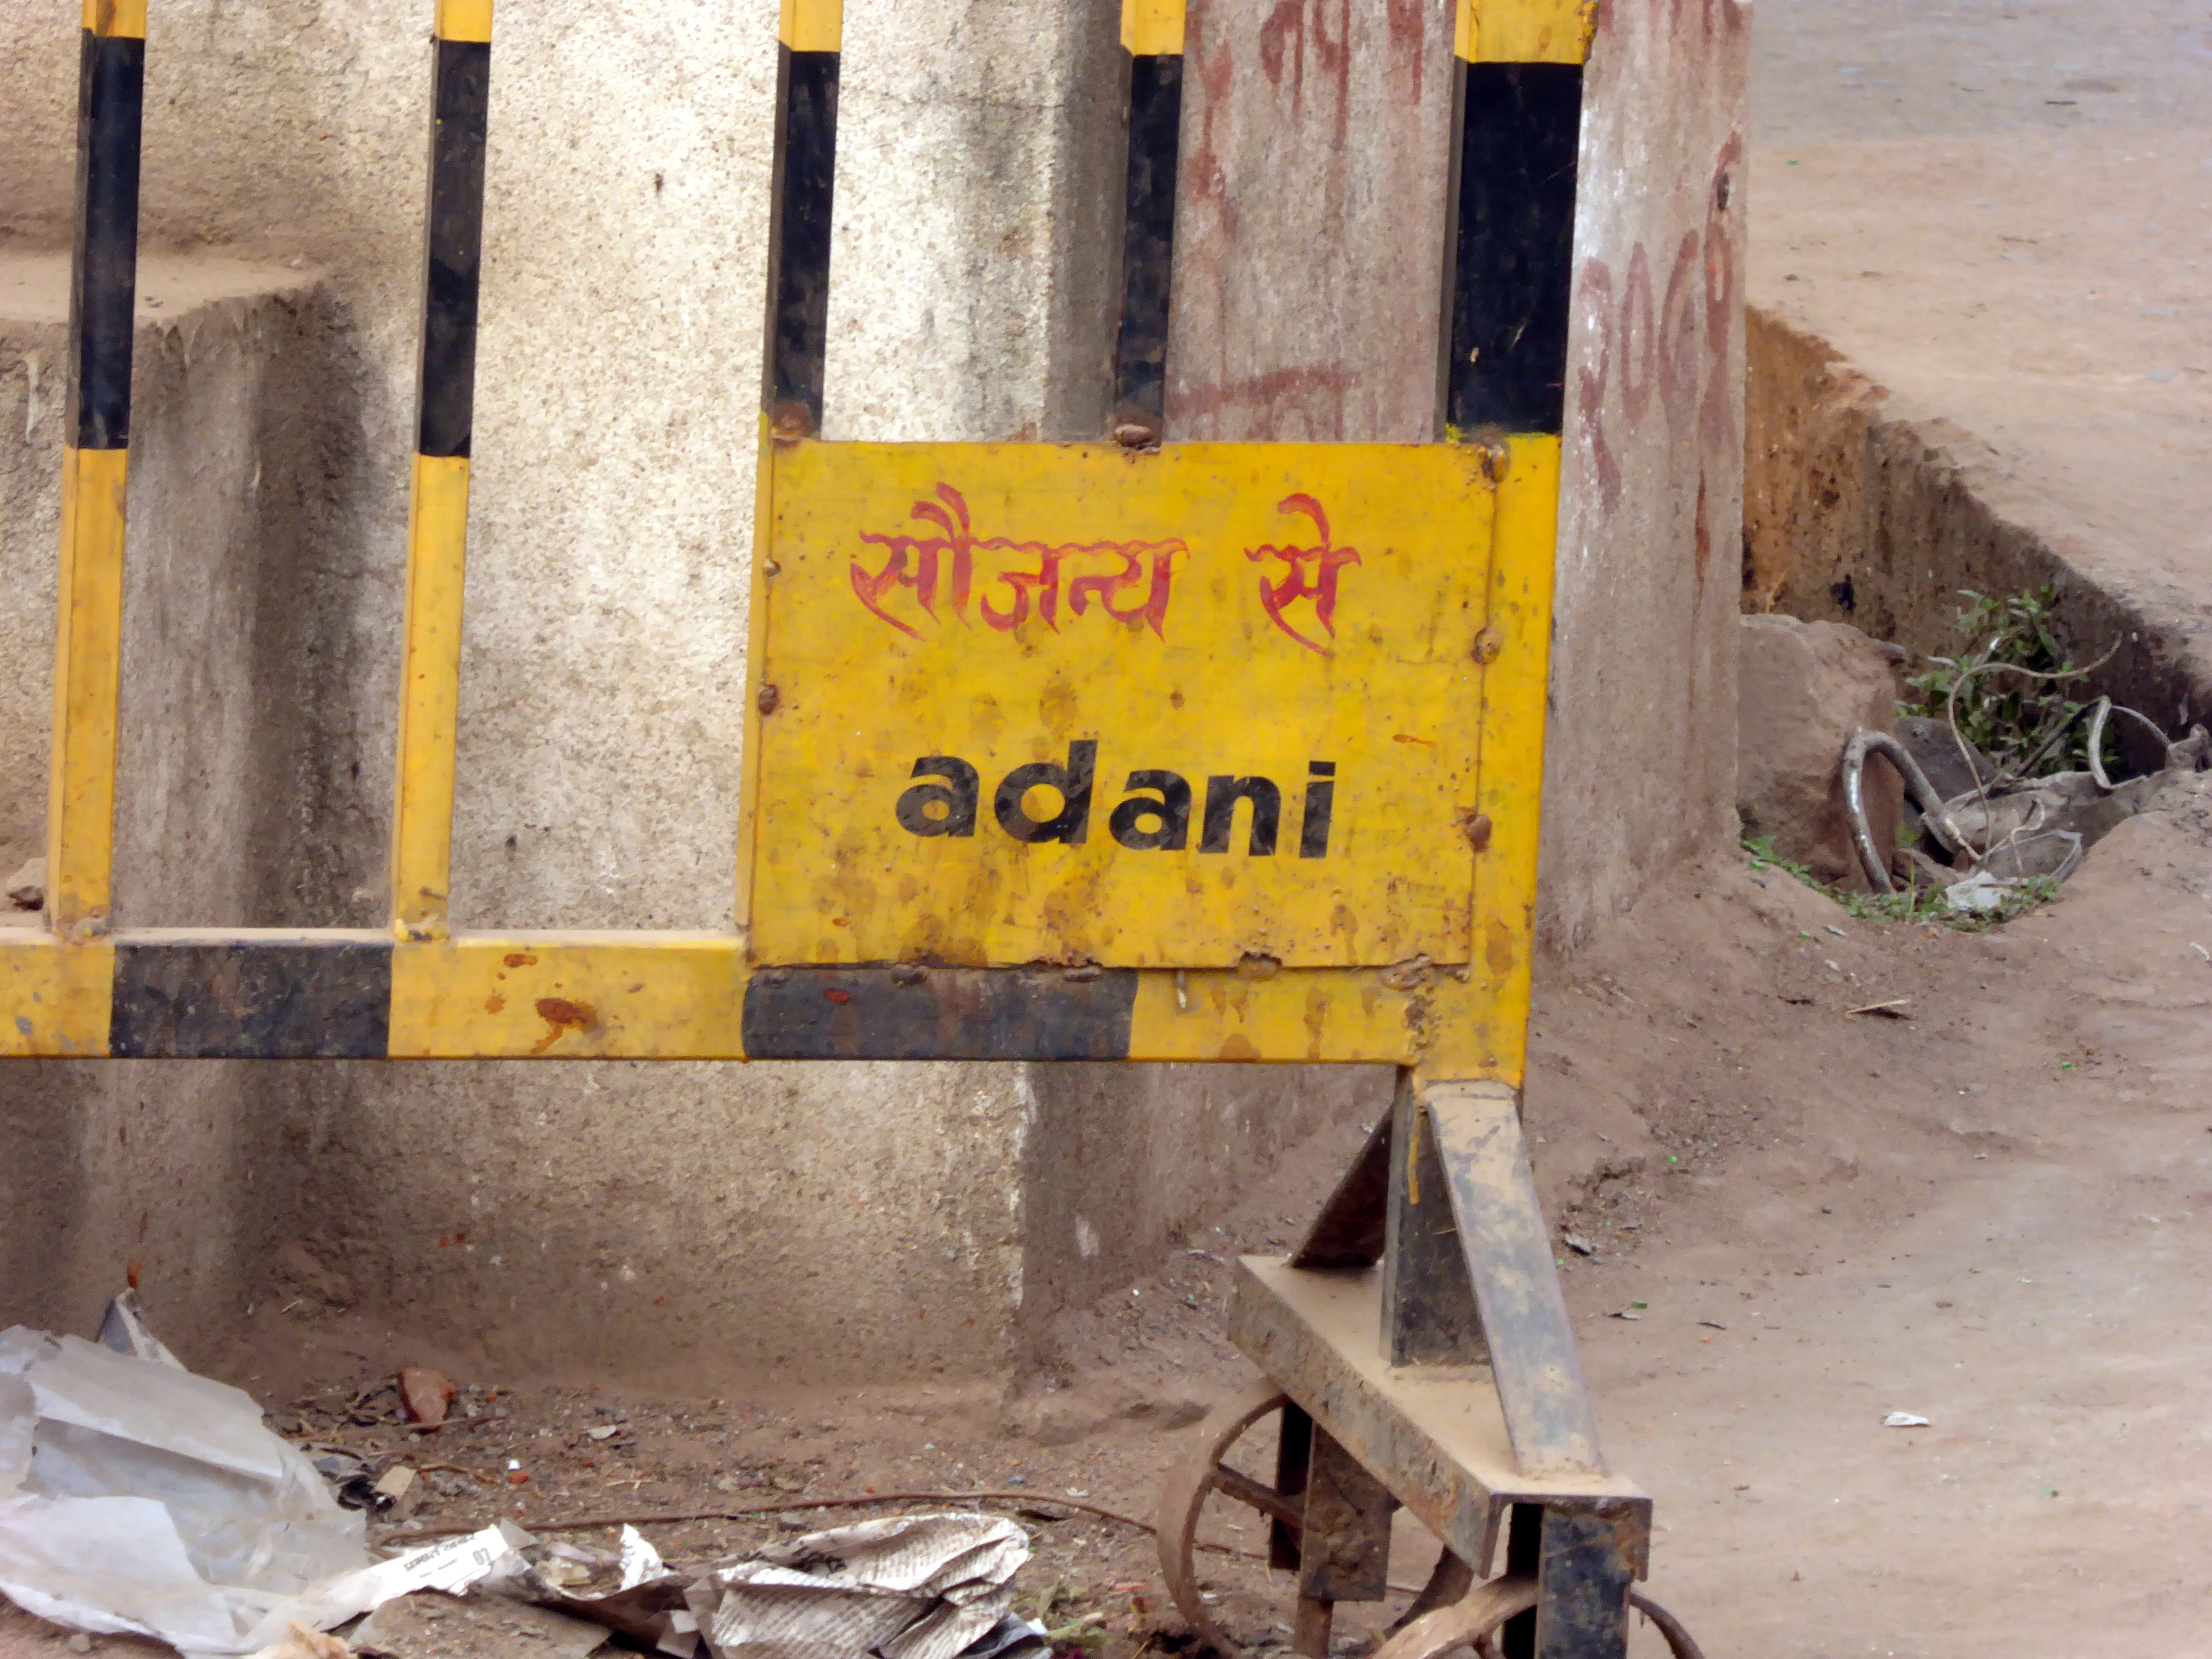 The Adani Group is ubiquitous in India. Photo Geoff Law